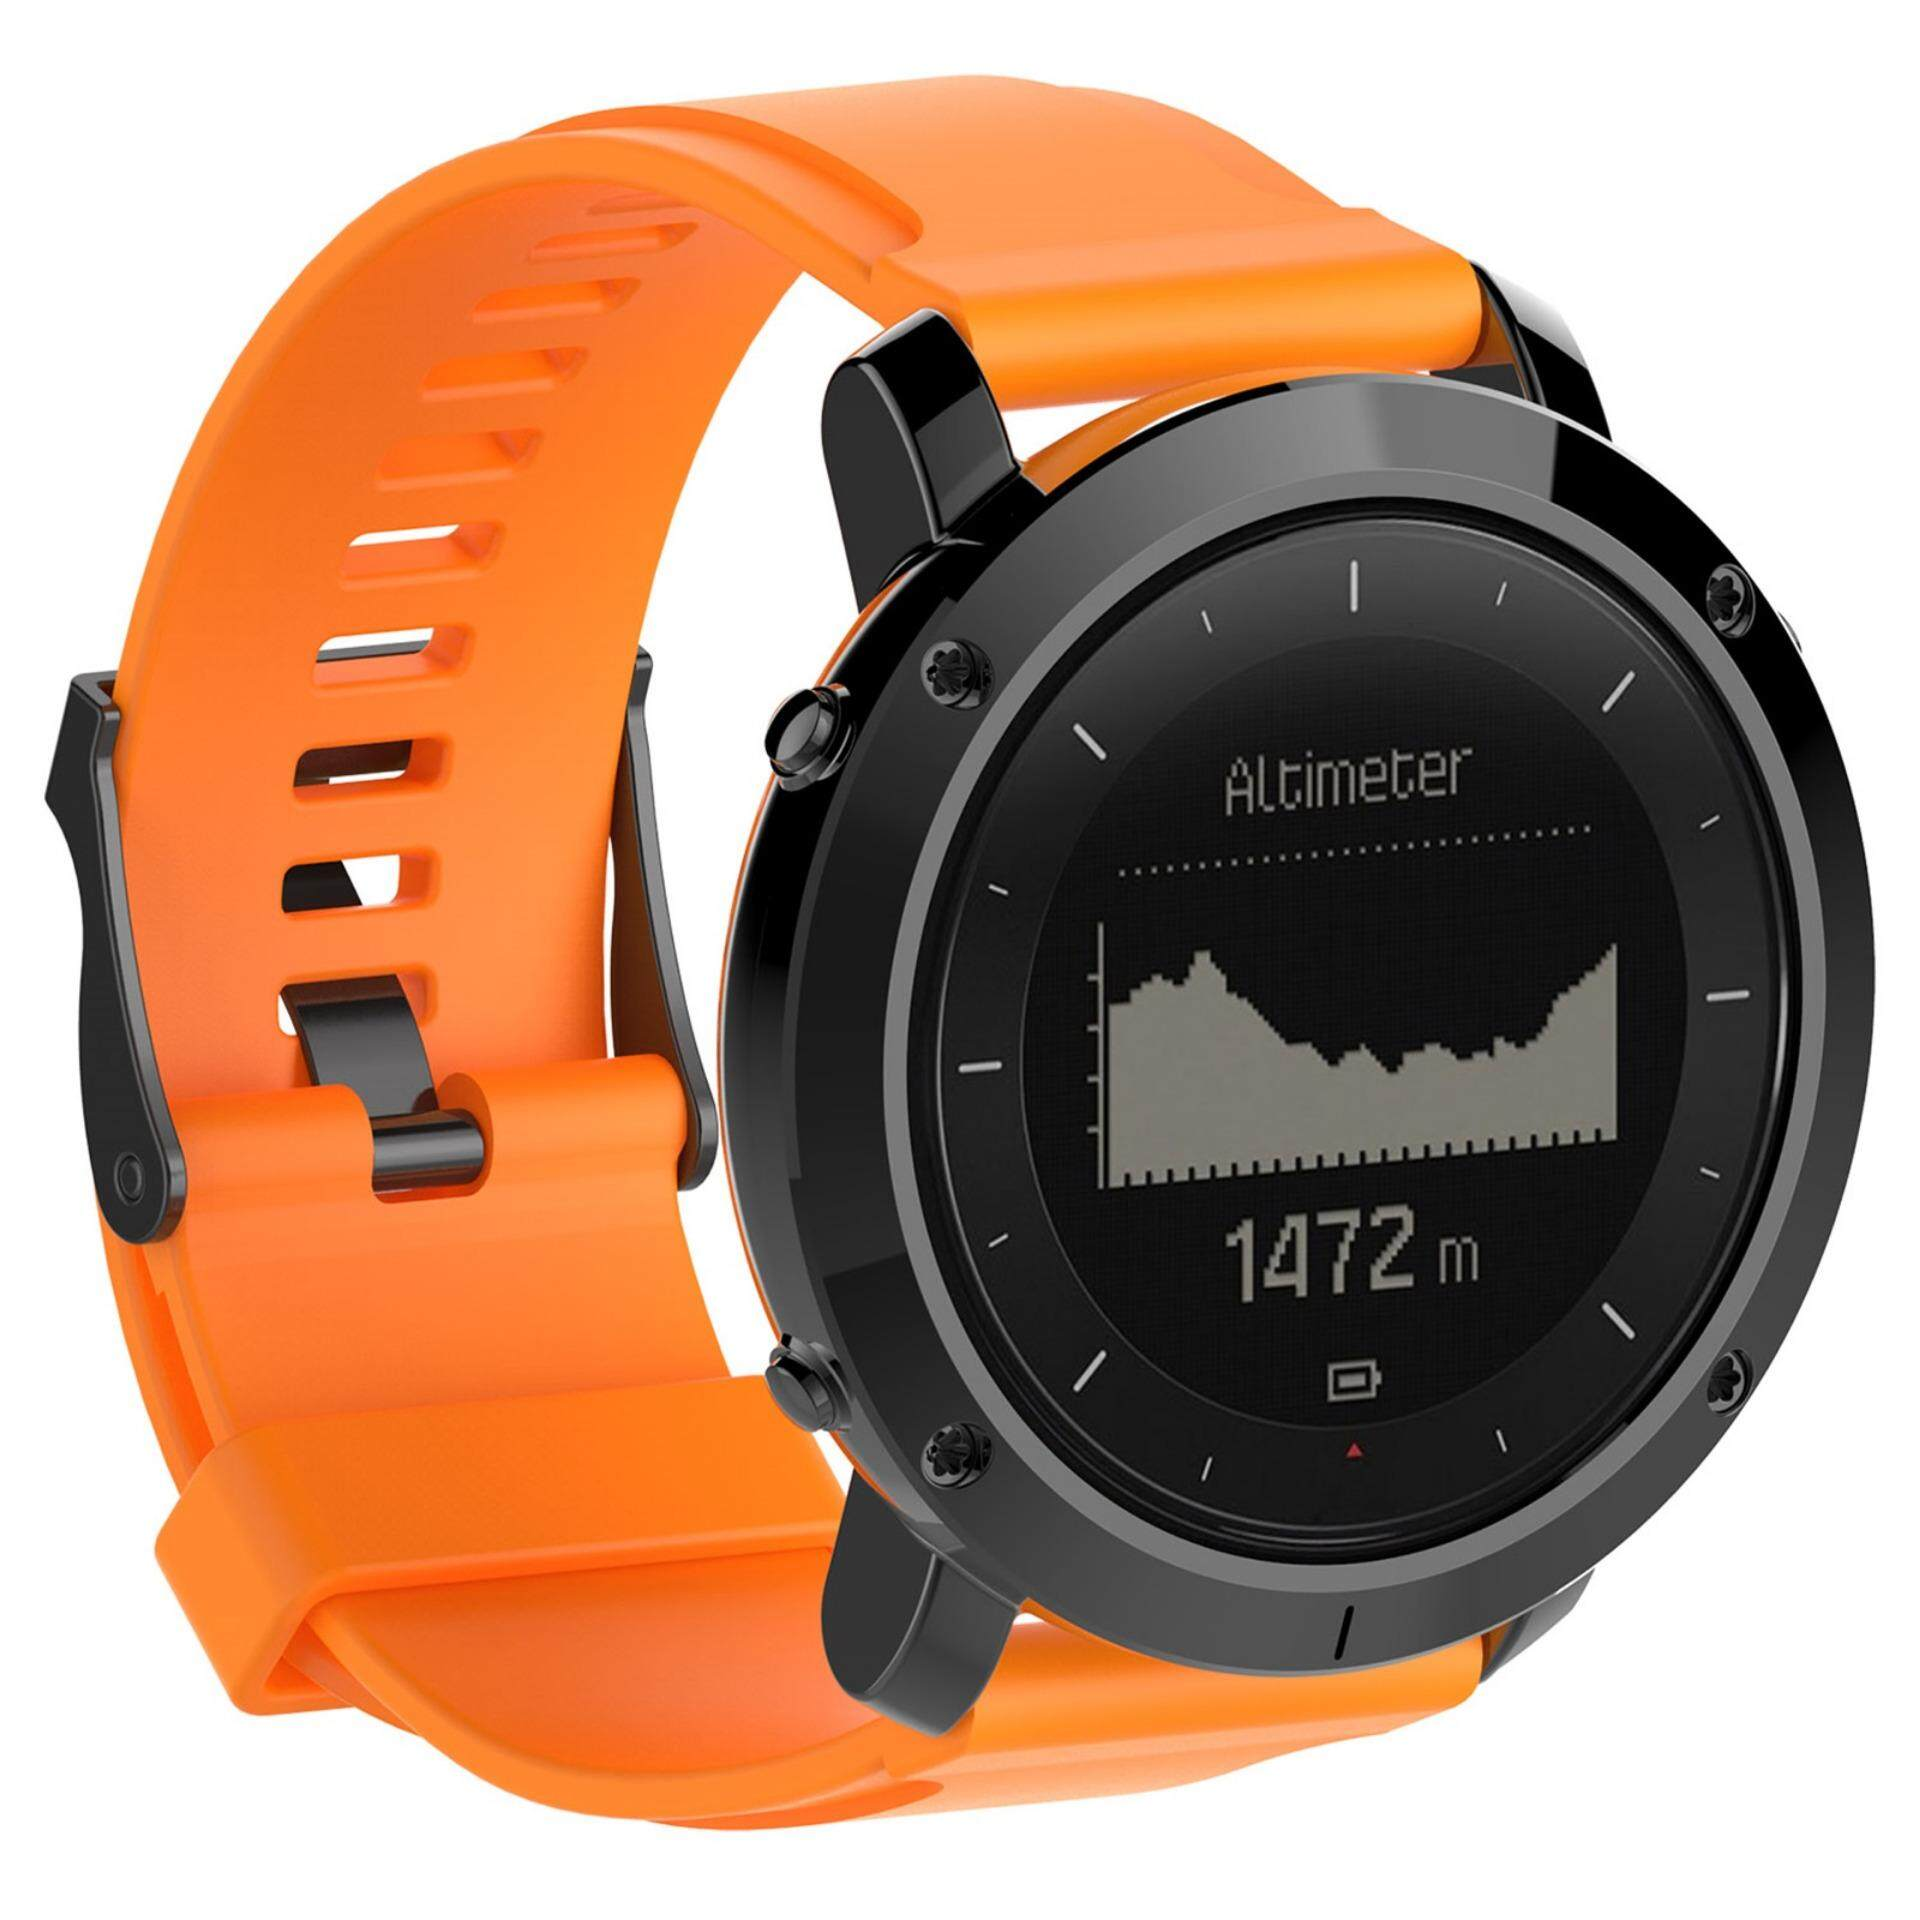 Sell Suunto Traverse Alpha Cheapest Best Quality My Store Black Outdoor Watches With Gps Glonass Myr 51